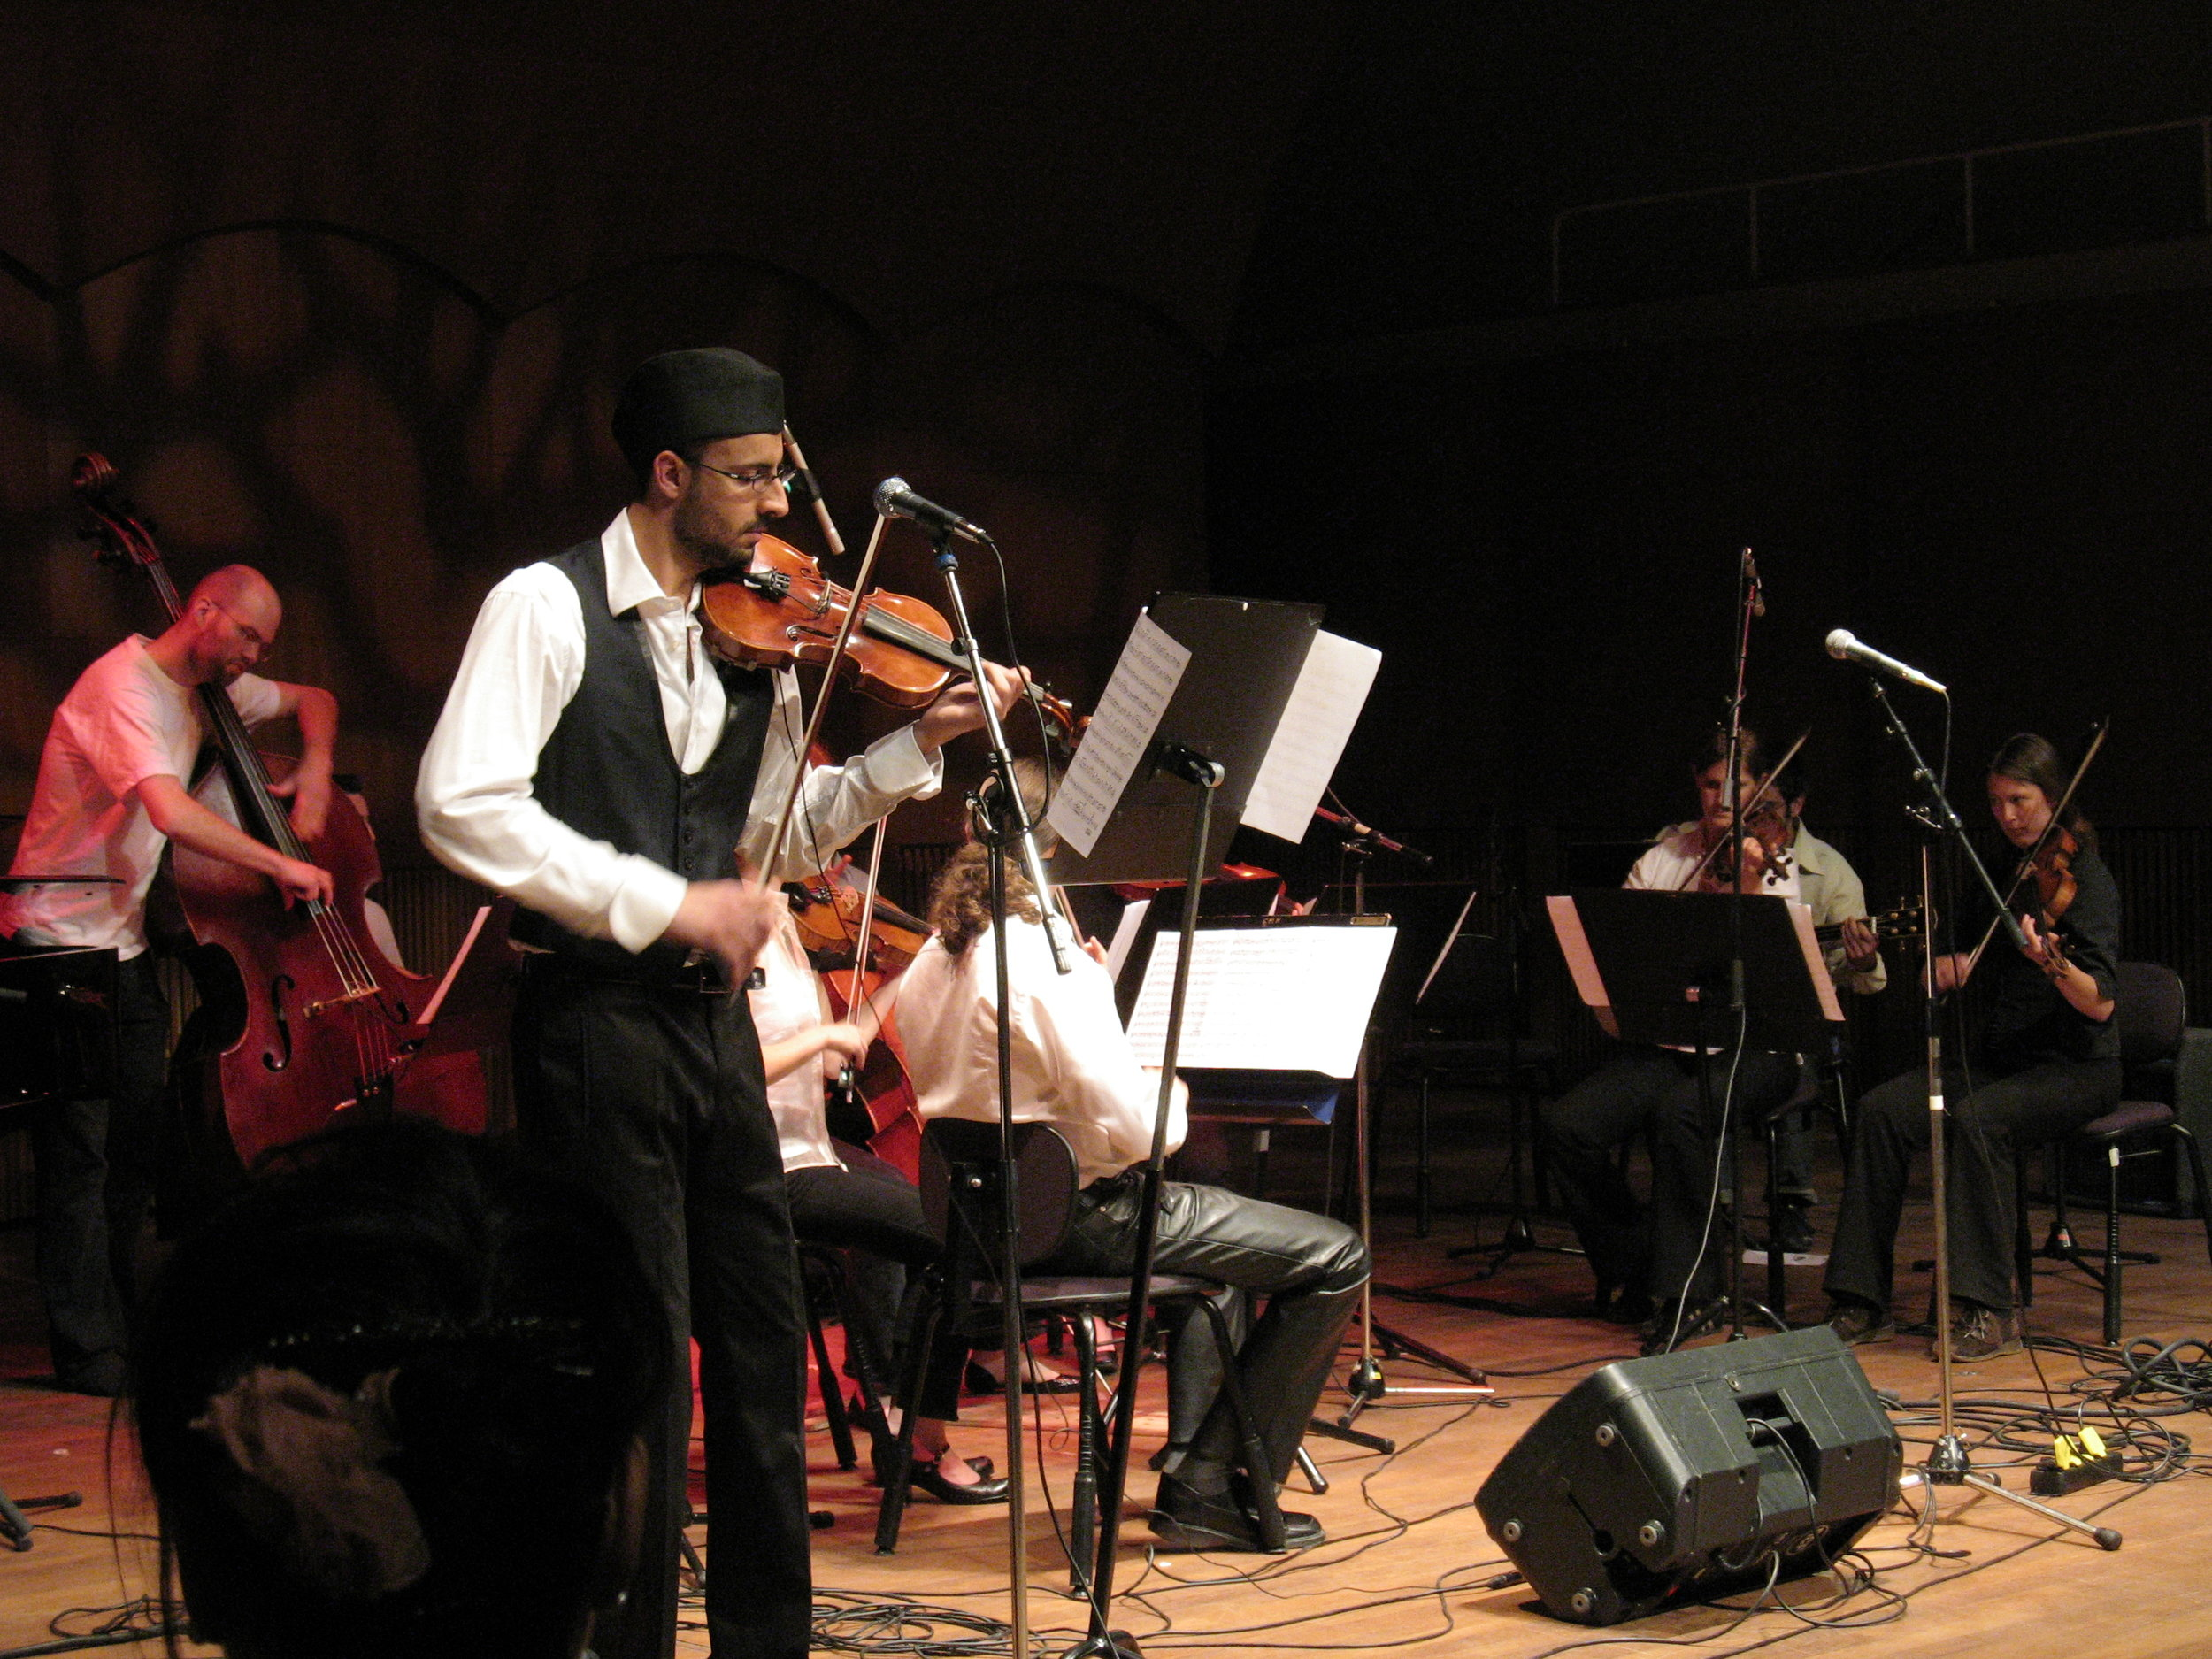 Pictures from the examination concert 007.jpg